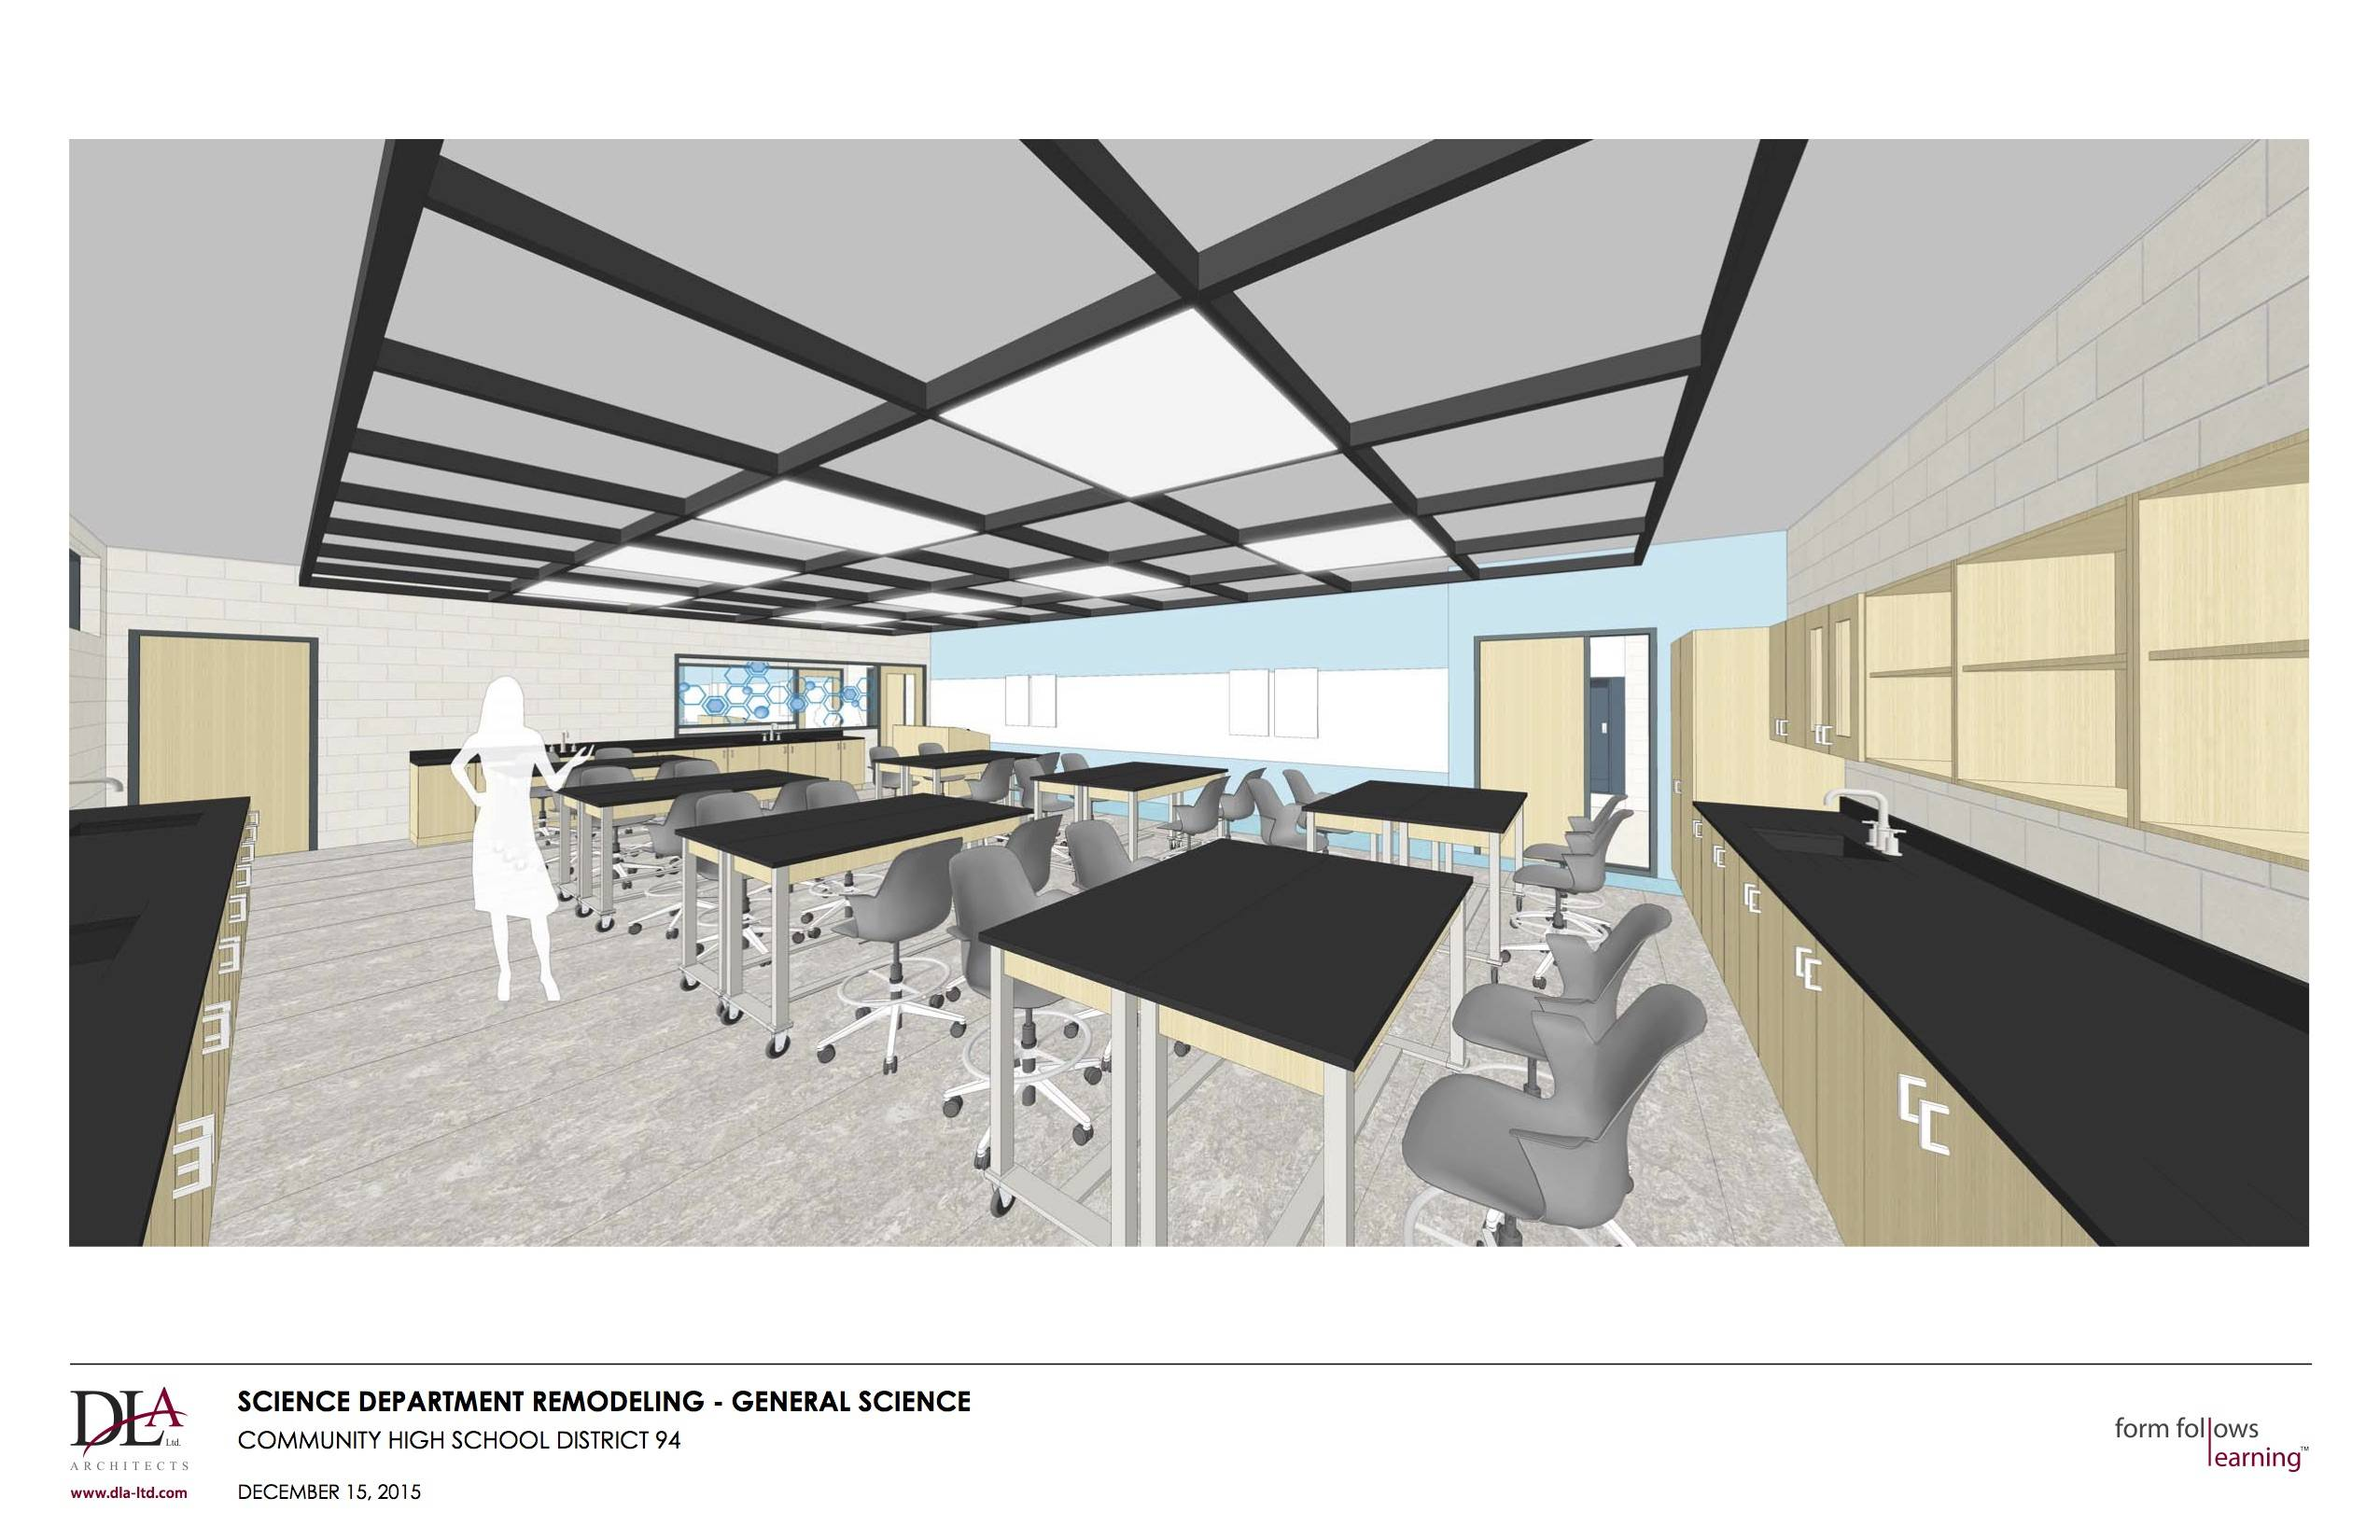 A $5 million renovation will make science classrooms at West Chicago High School more flexible, with tables and chairs that are easy to move and rearrange.